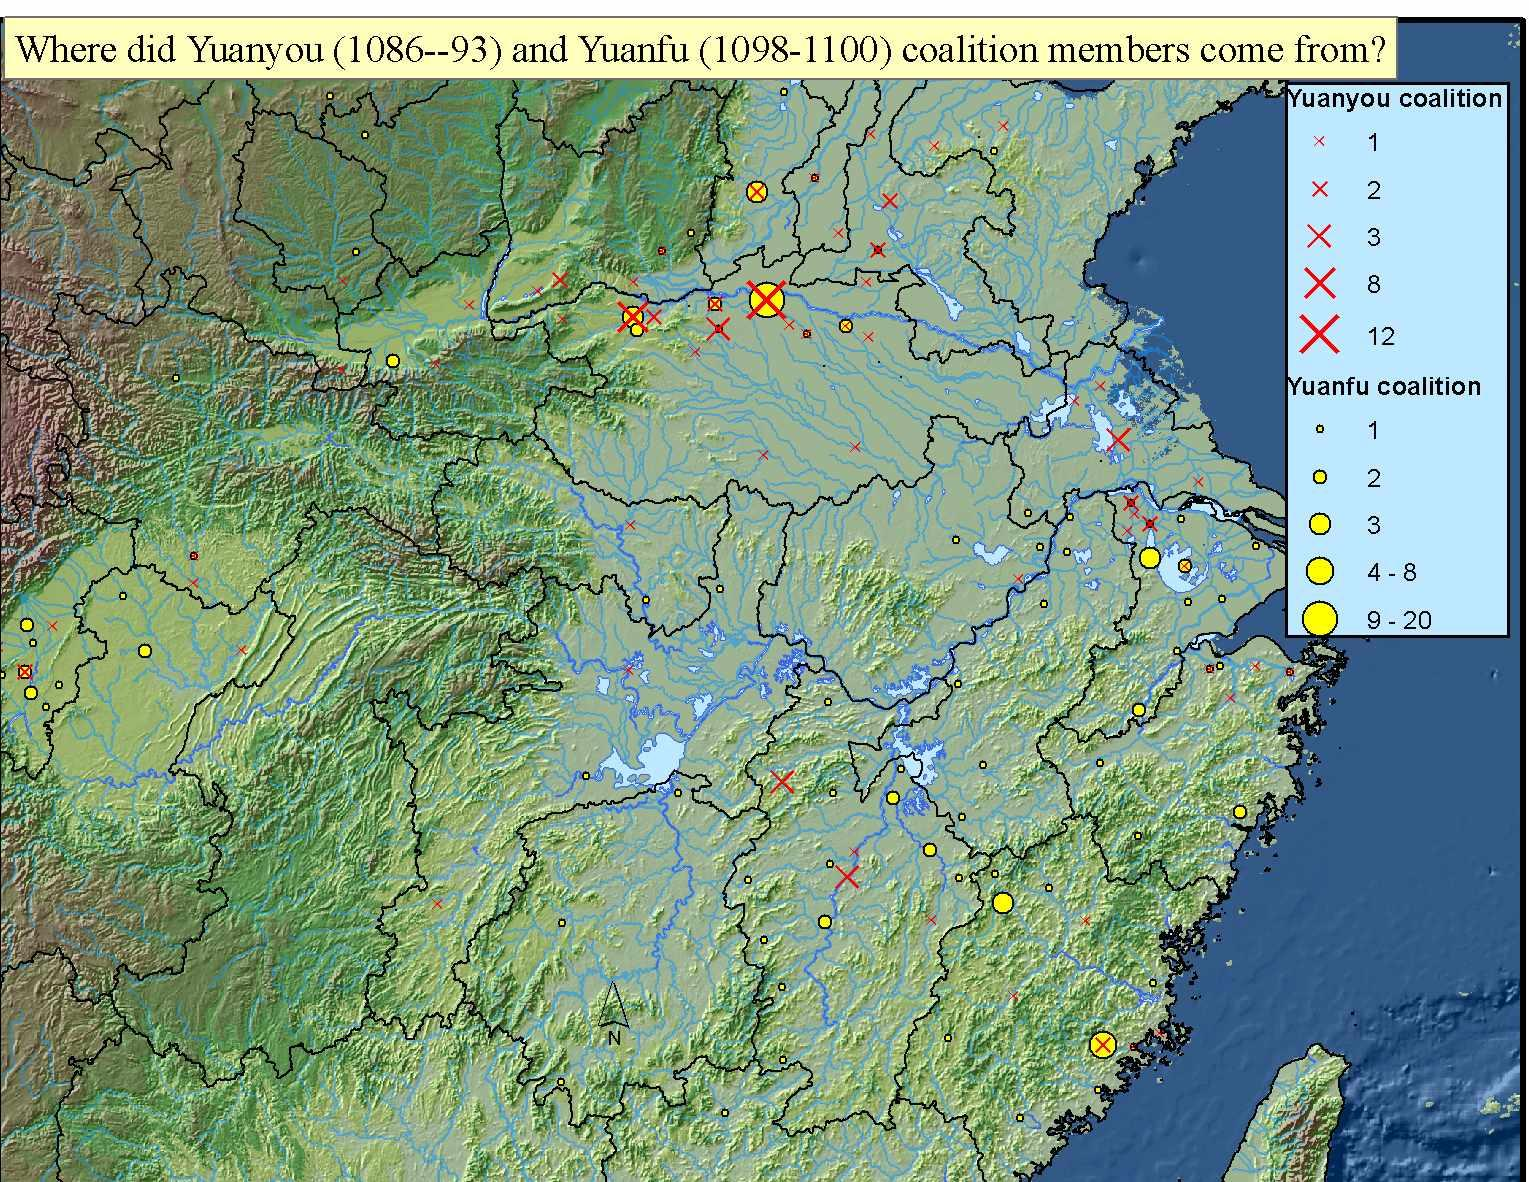 Where did Yuanyou(1086--93) and Yuanfu (1098-1100) coalition members come from?